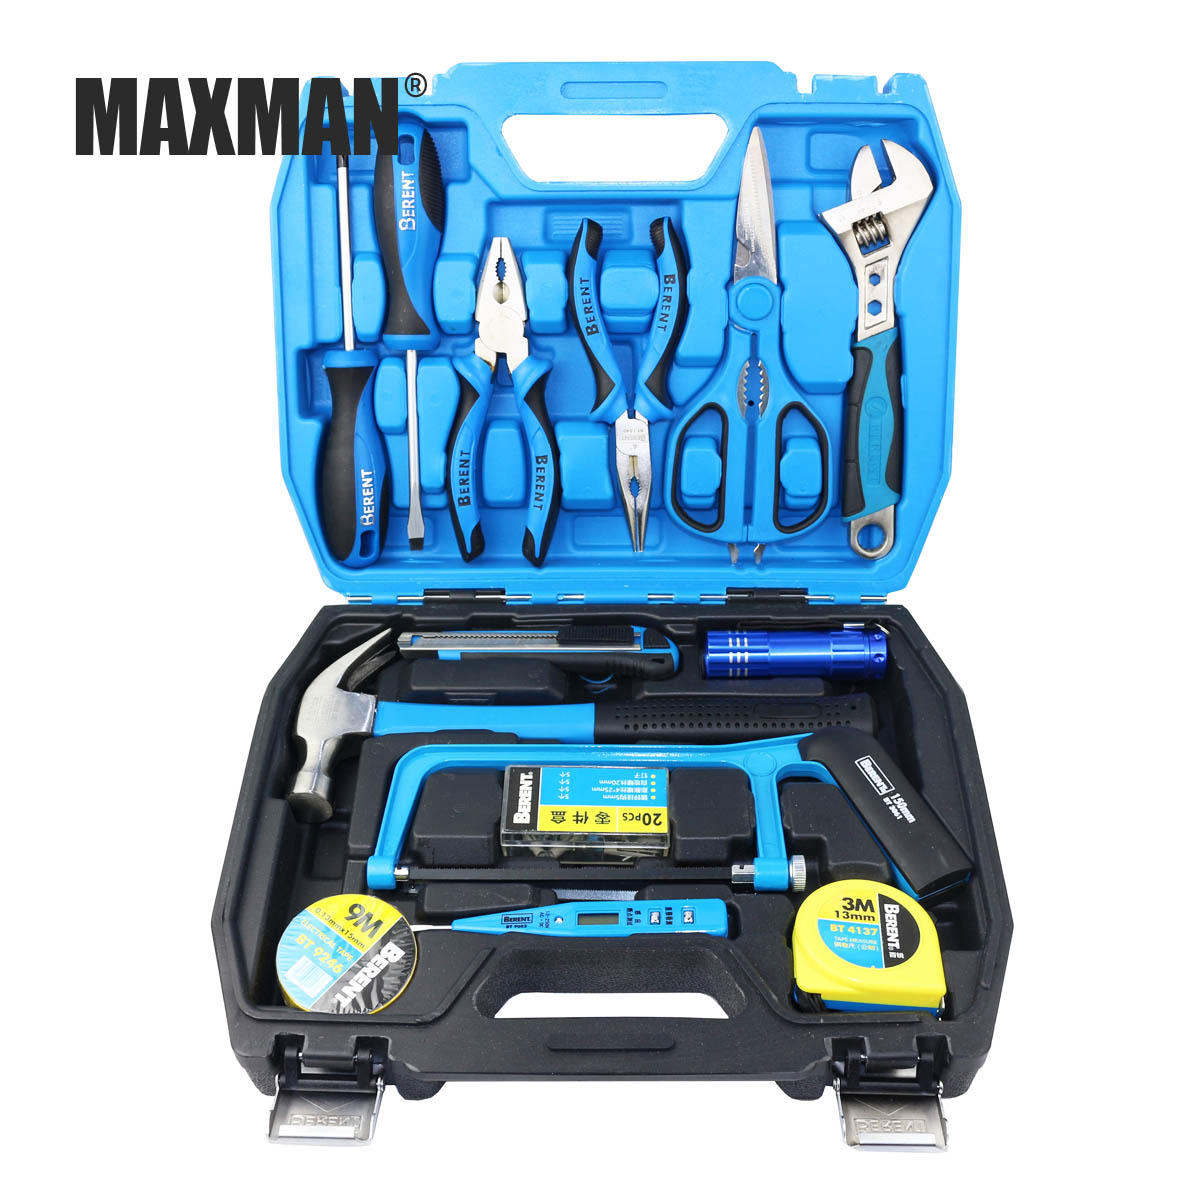 MAXMAN 36Pcs Hand Tool Set General Household Hand Tool Kit with Plastic Toolbox Storage Case Pliers Saw Wrench Screwdriver KnifeMAXMAN 36Pcs Hand Tool Set General Household Hand Tool Kit with Plastic Toolbox Storage Case Pliers Saw Wrench Screwdriver Knife